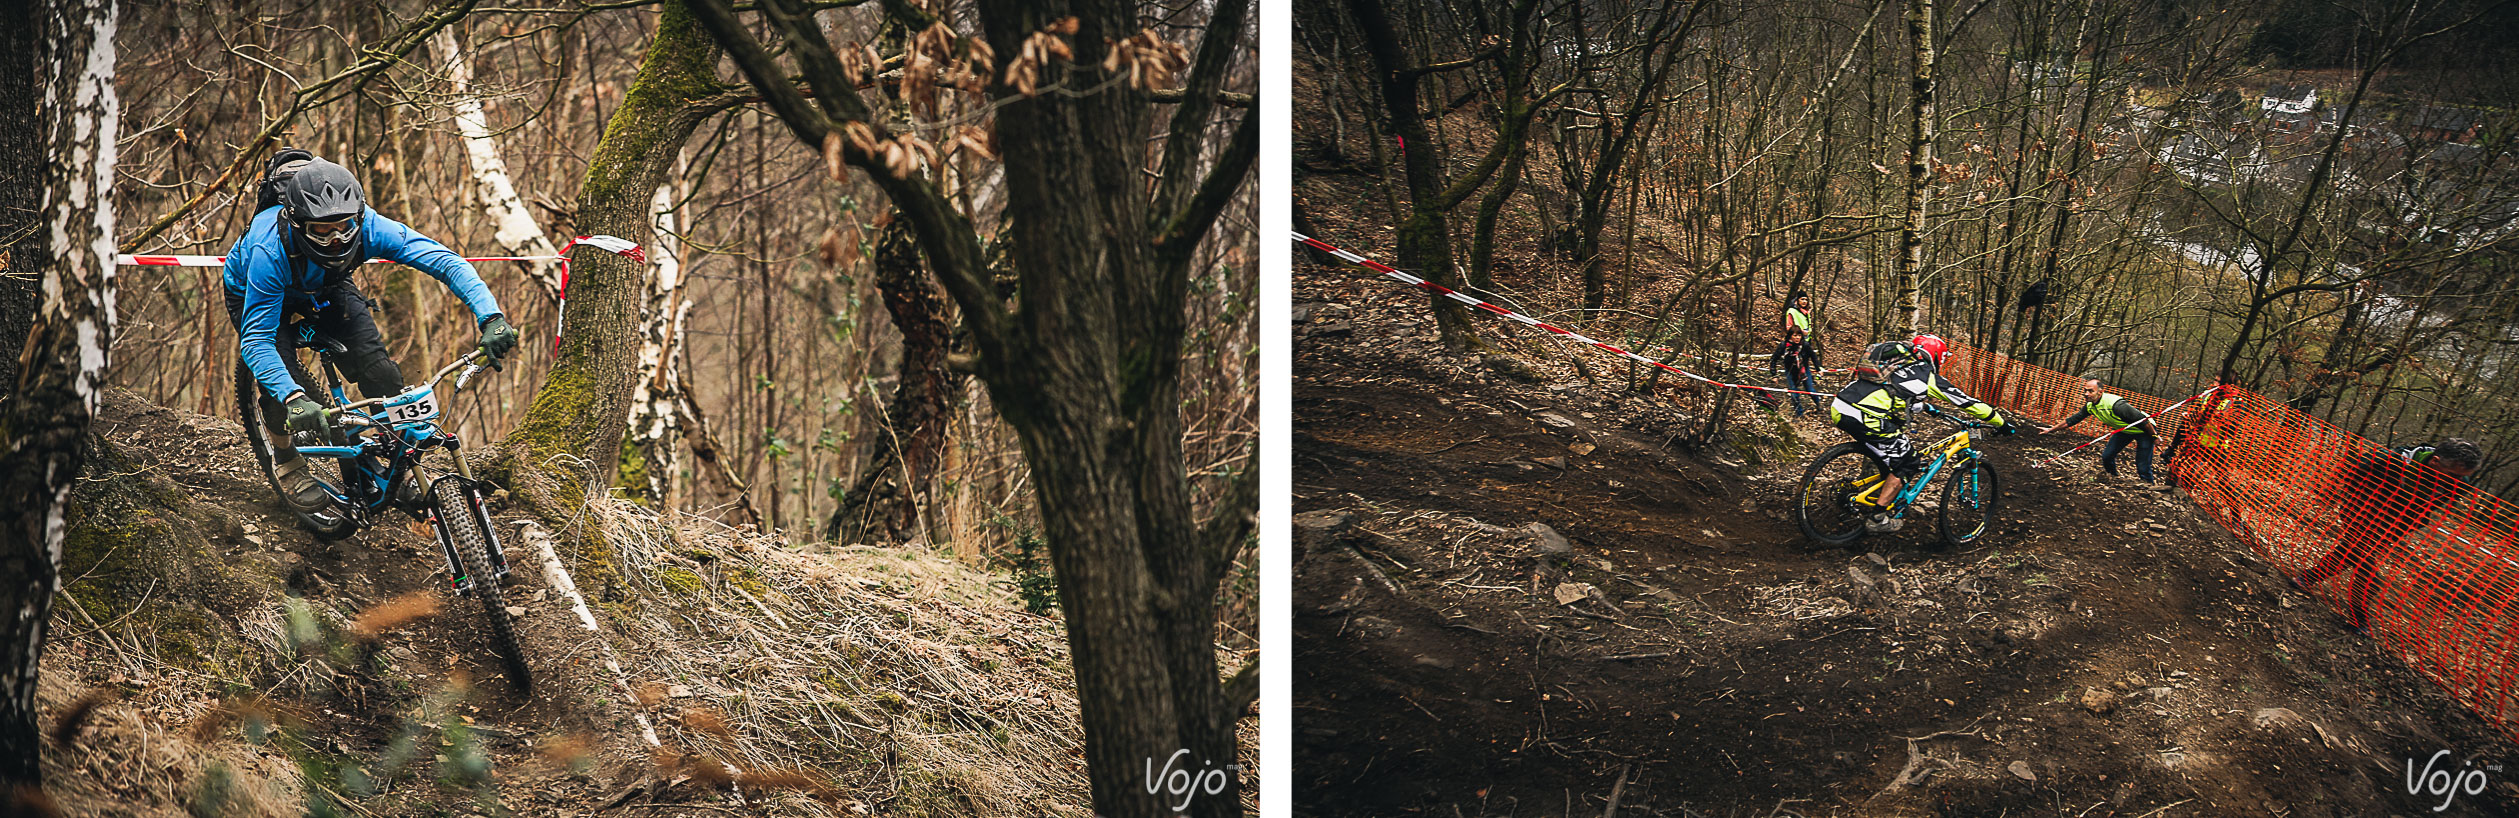 4-Belgian_Enduro_Cup_Chaudfontaine_2016_Copyright_OBeart_Vojomag-1